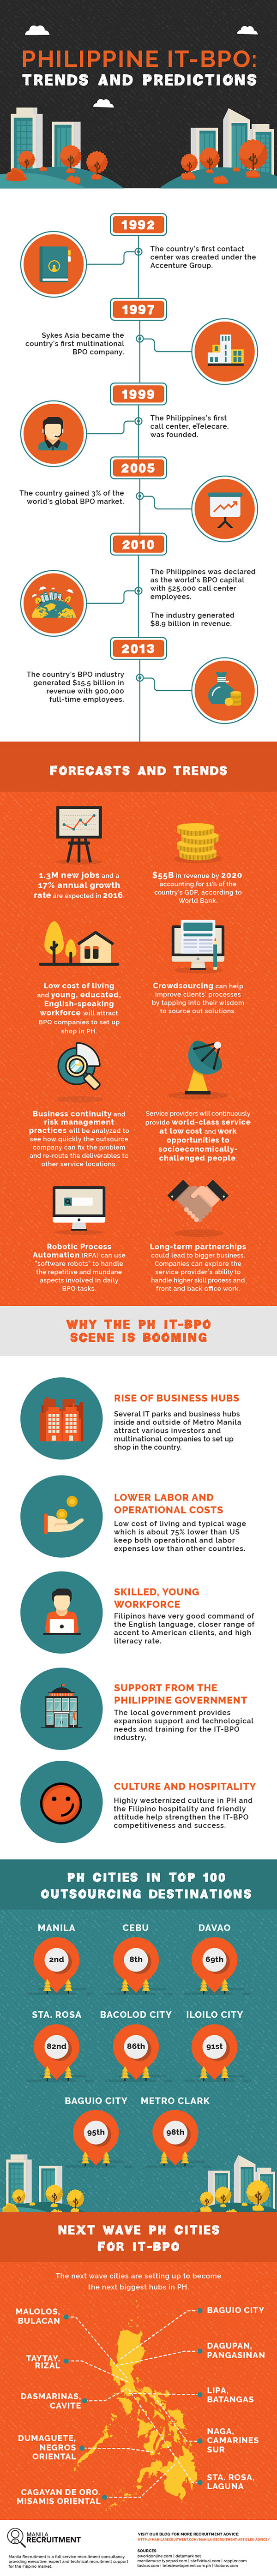 Trends and predictions for the Philippine IT-BPO industry